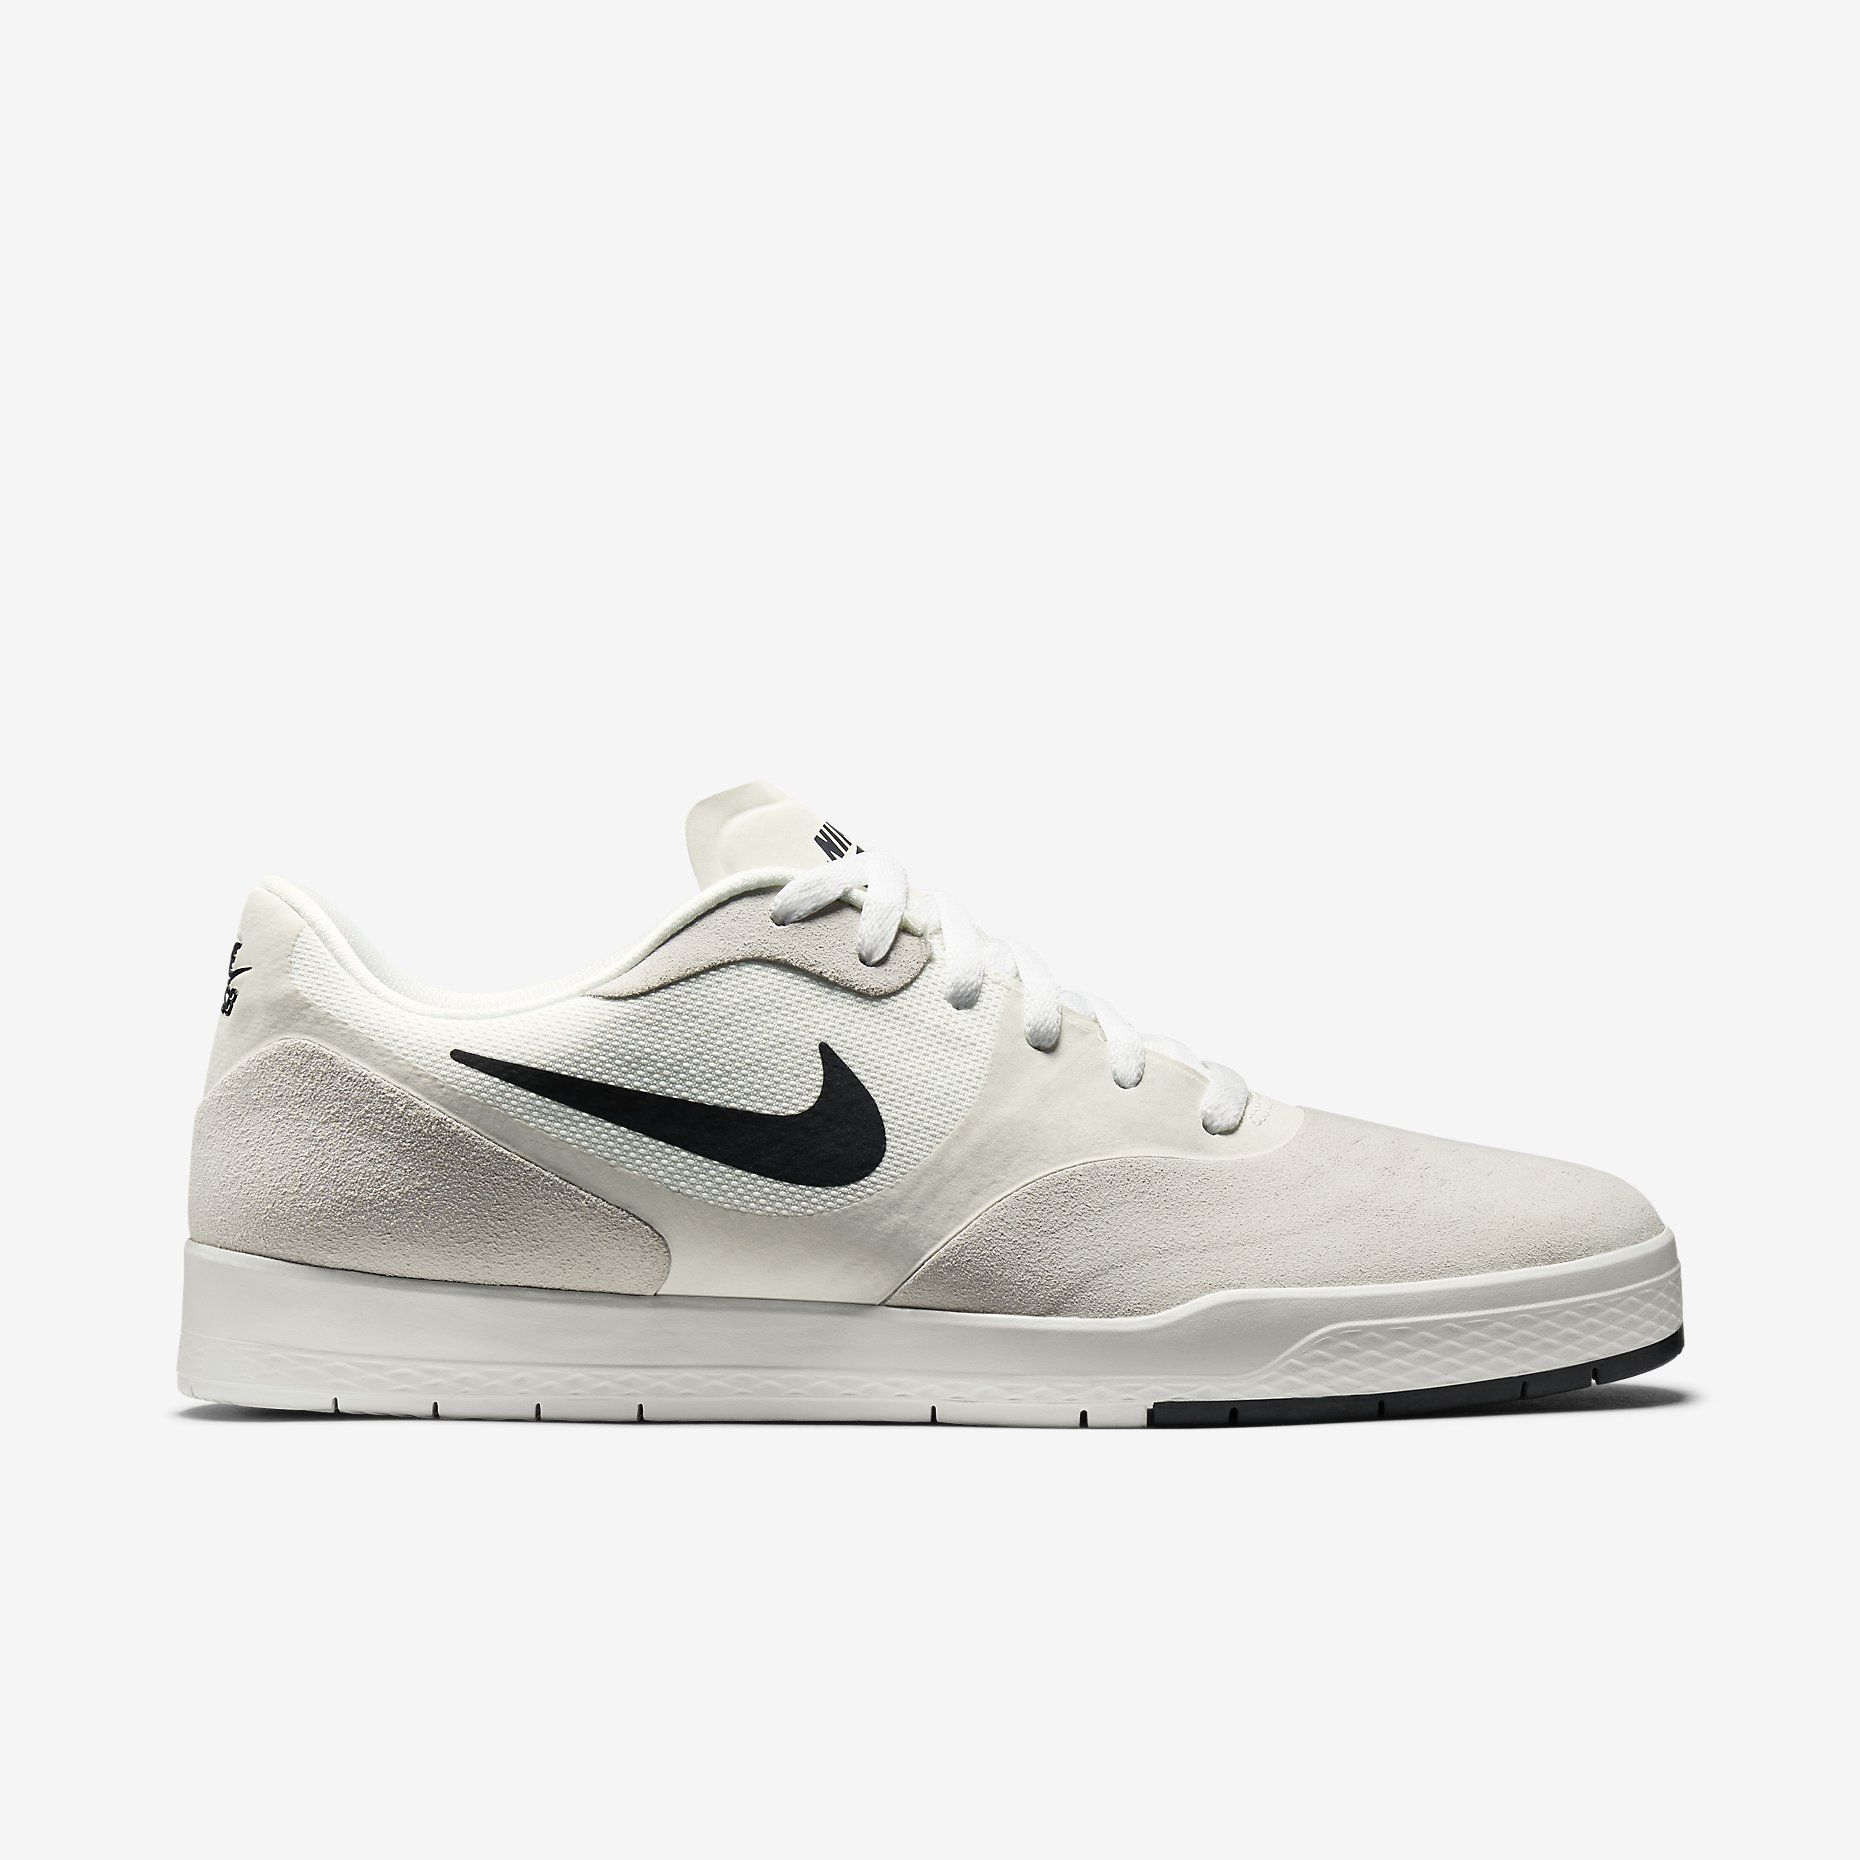 Nike SB Paul Rodriguez 9 Cupsole Men Skateboarding Shoes Retro